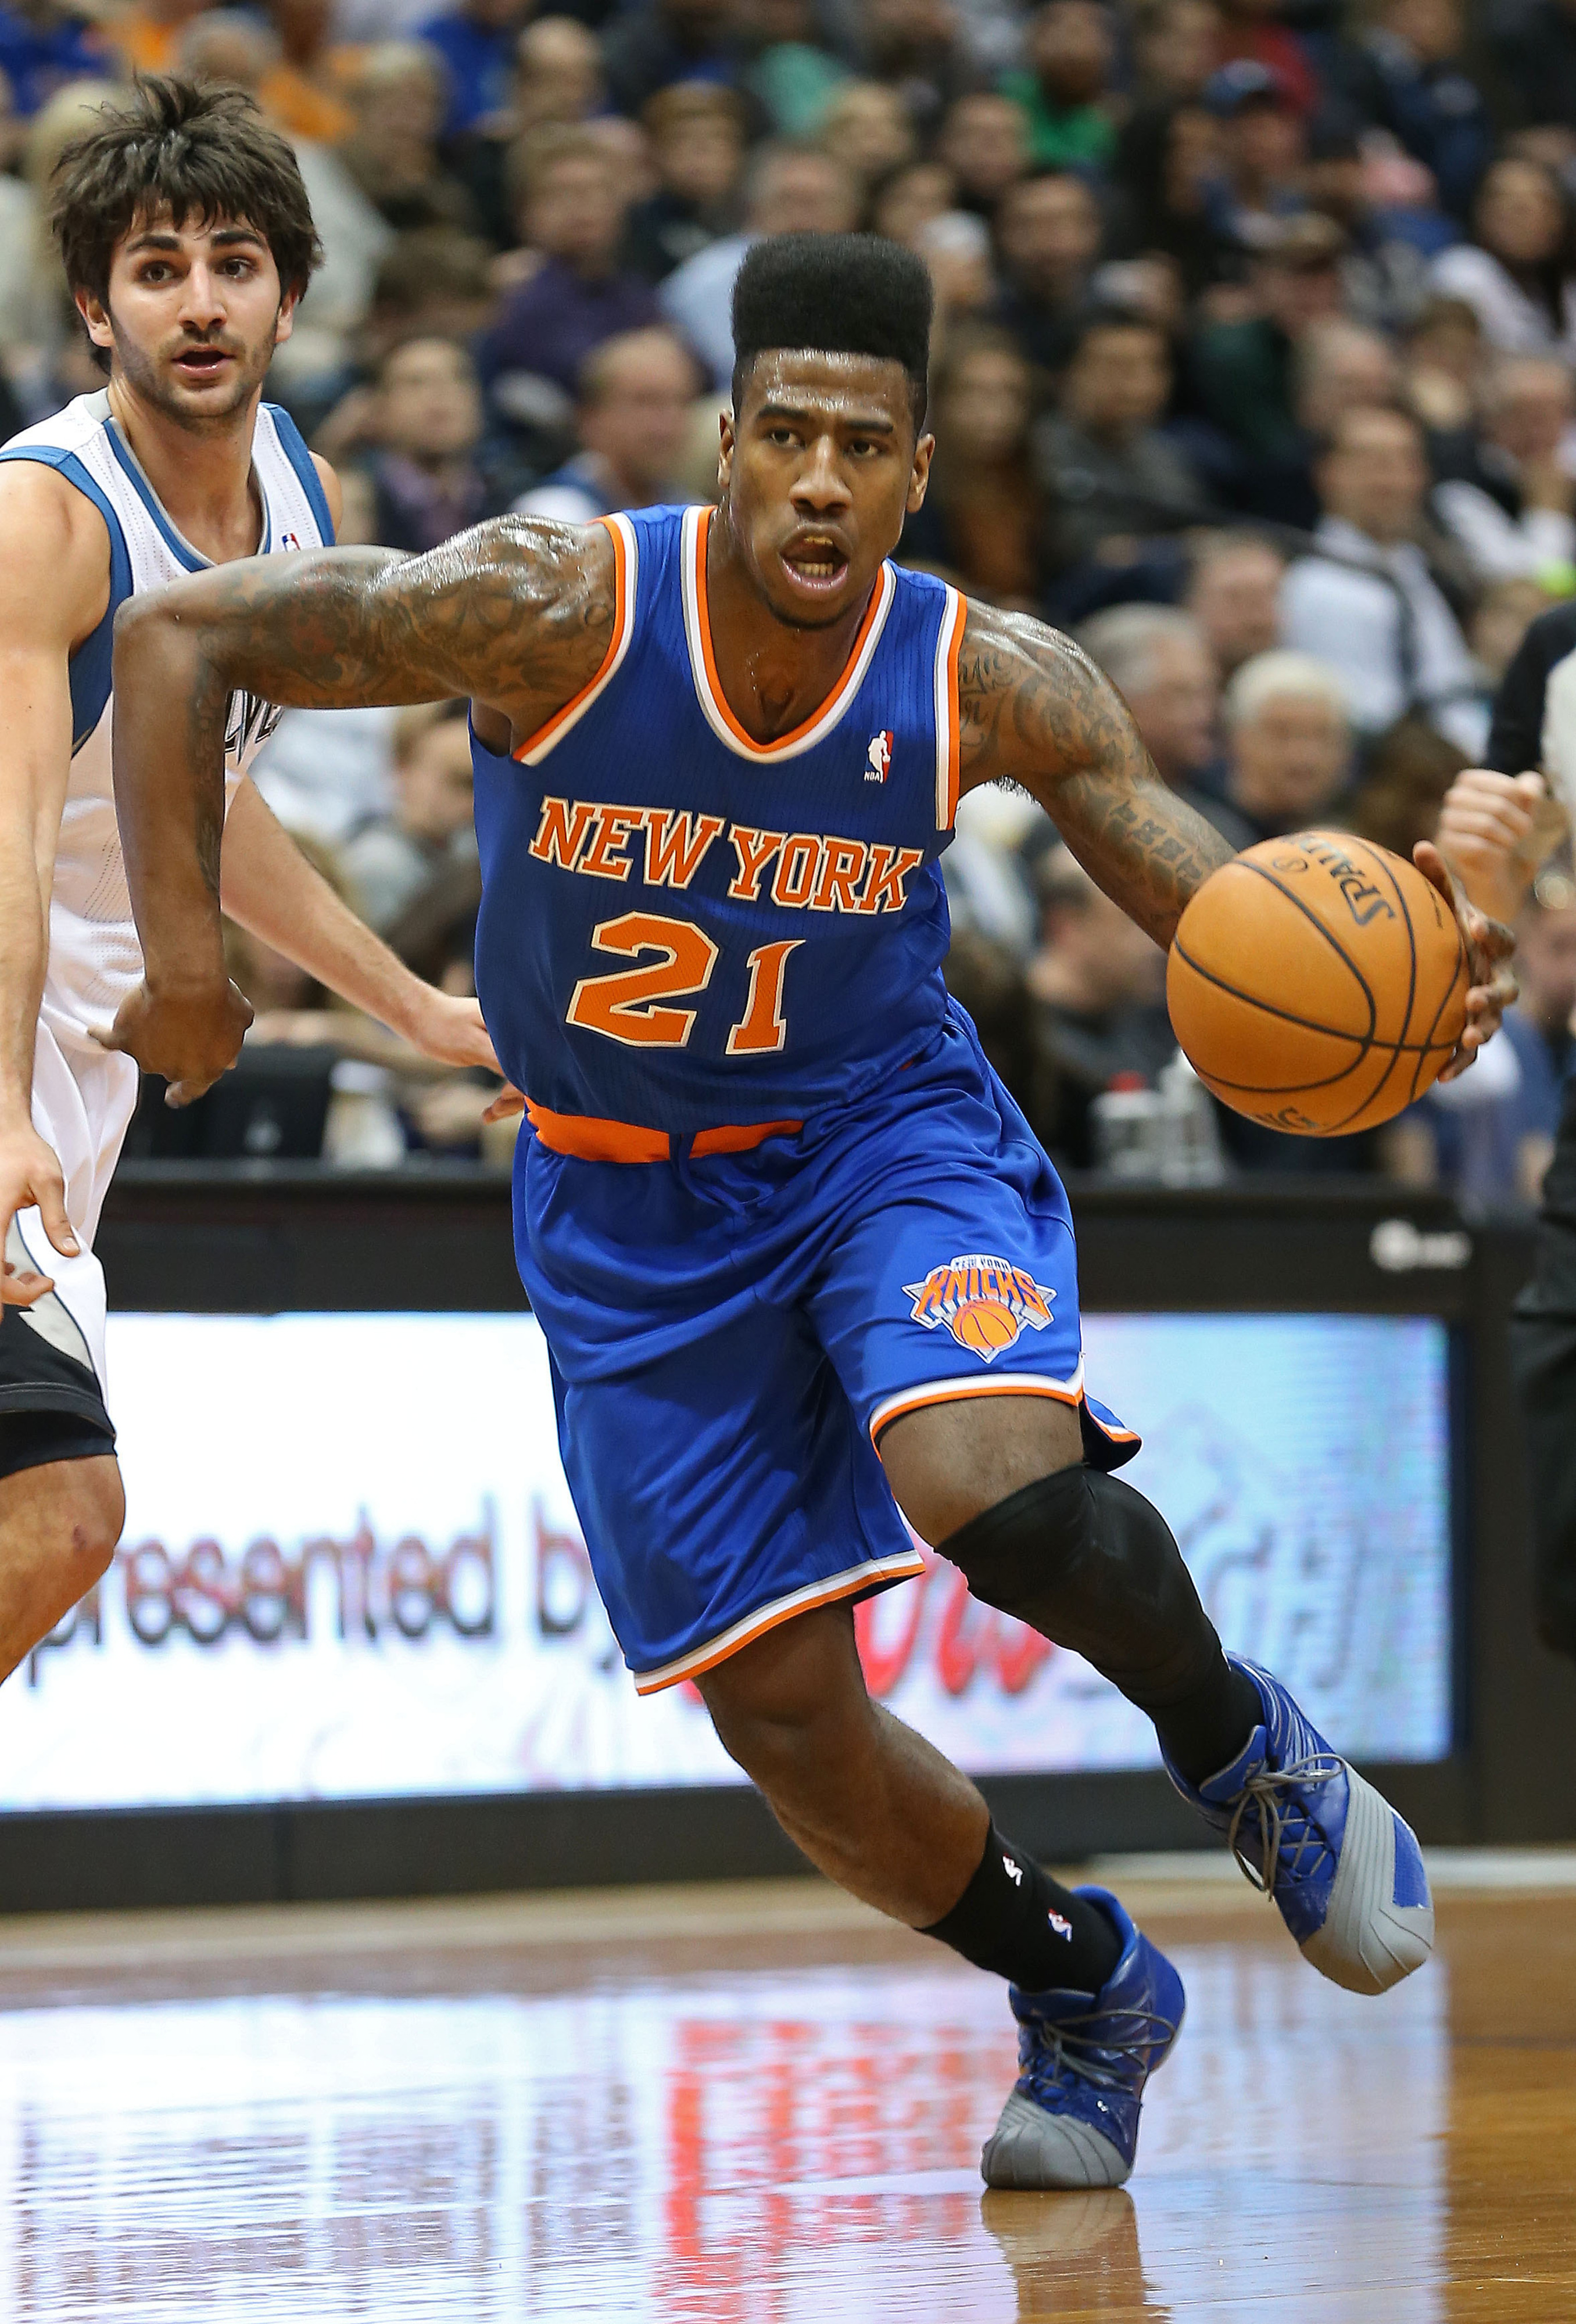 Iman Shumpert and his hair are staying in New York, says agent.